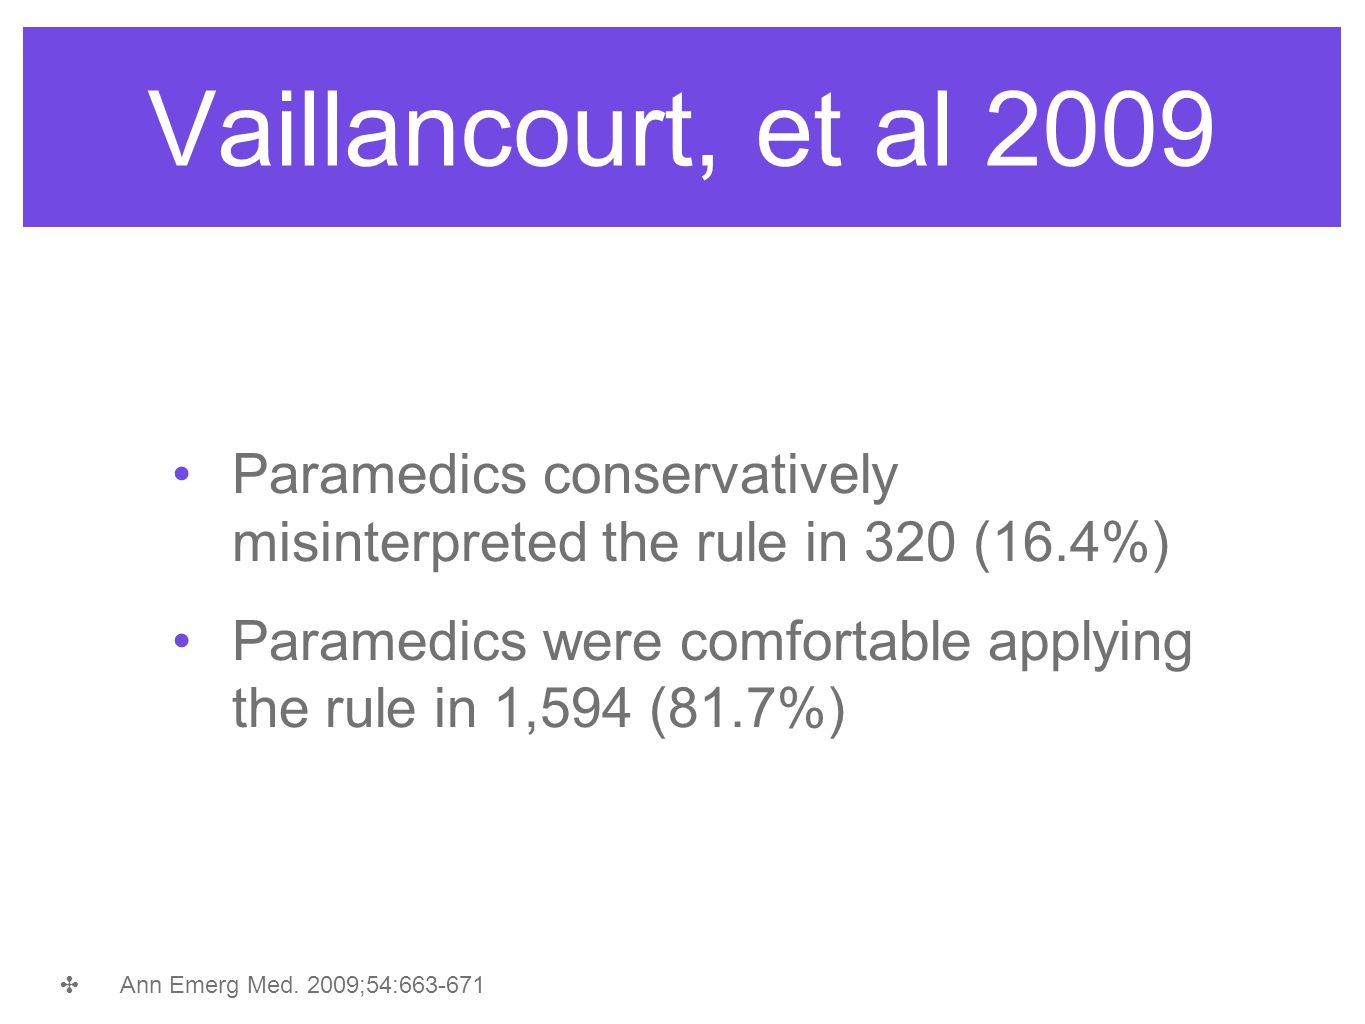 Vaillancourt, et al 2009 Paramedics conservatively misinterpreted the rule in 320 (16.4%)